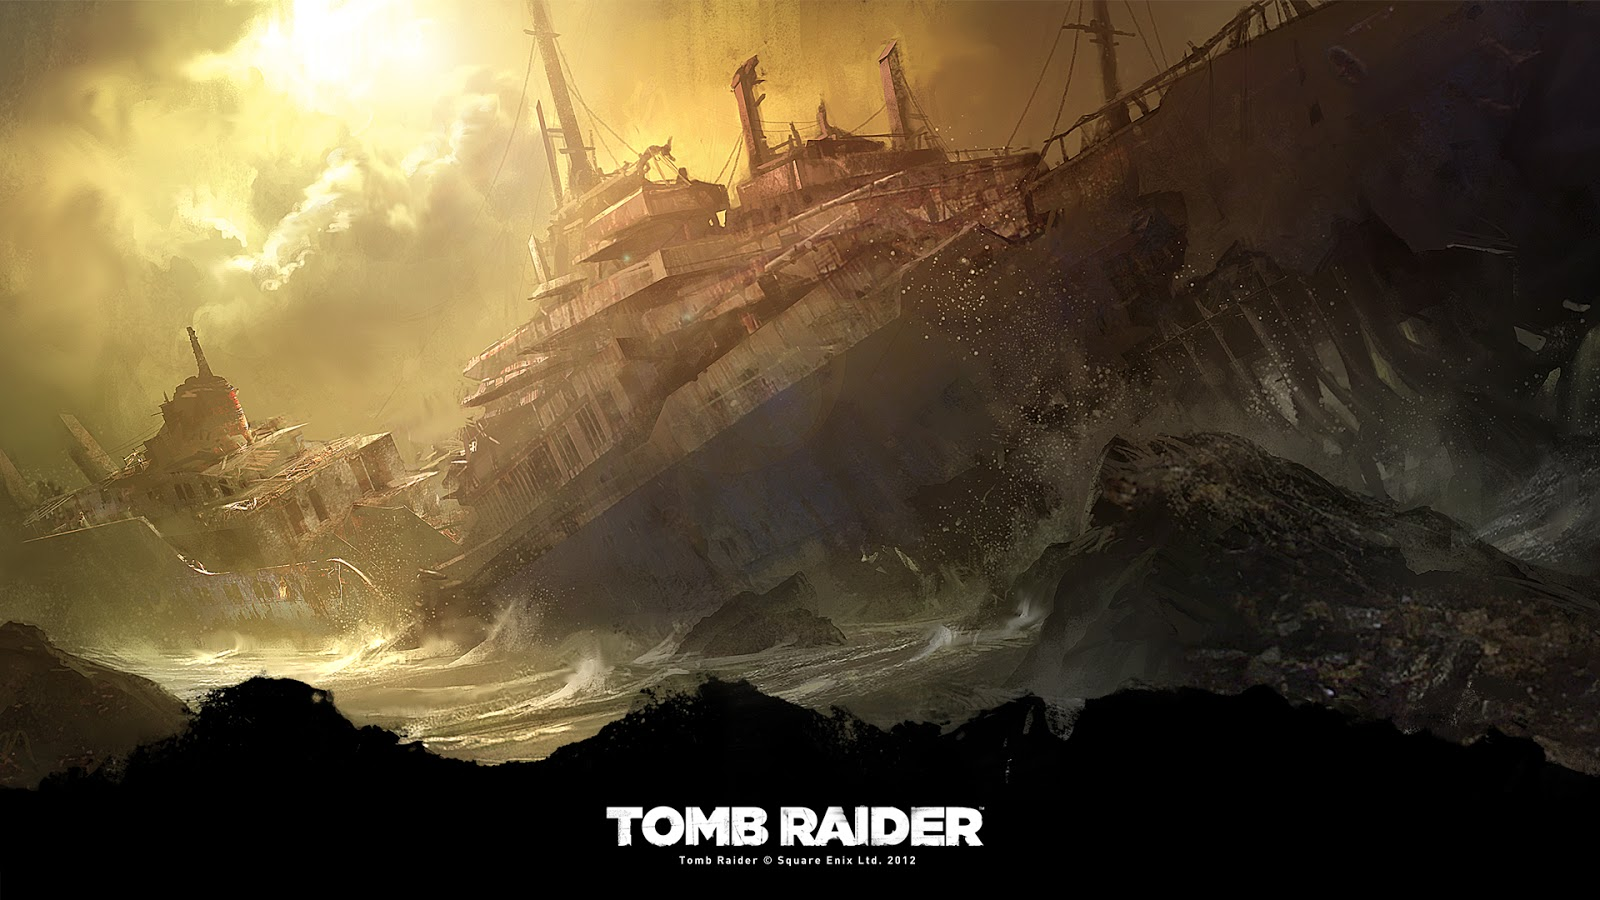 Tomb Raider HD & Widescreen Wallpaper 0.698660603669367